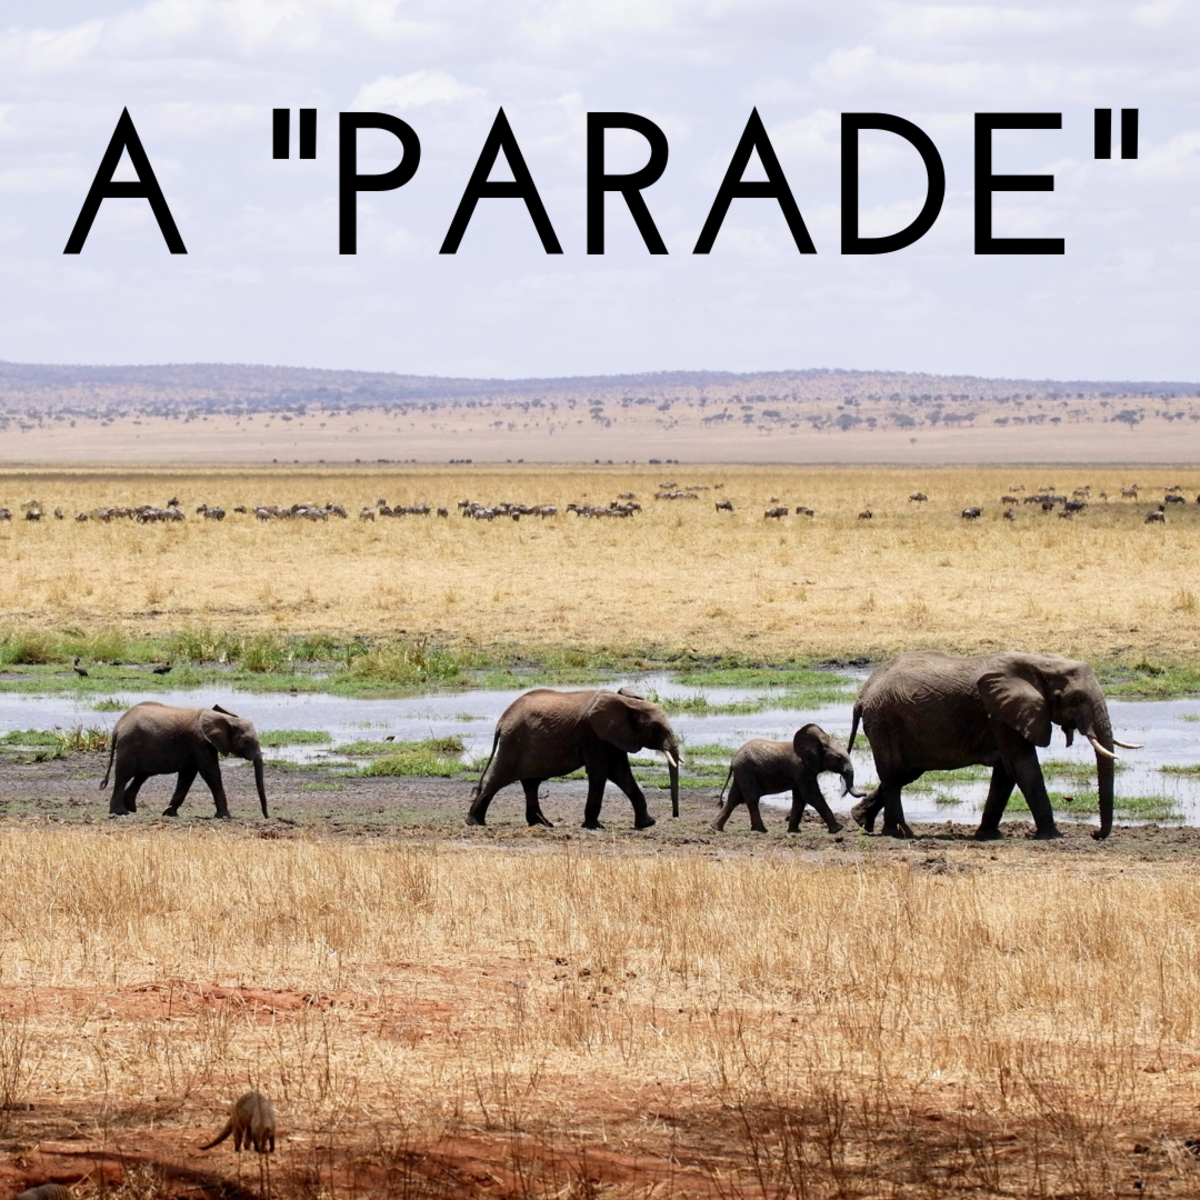 A parade of elephants.